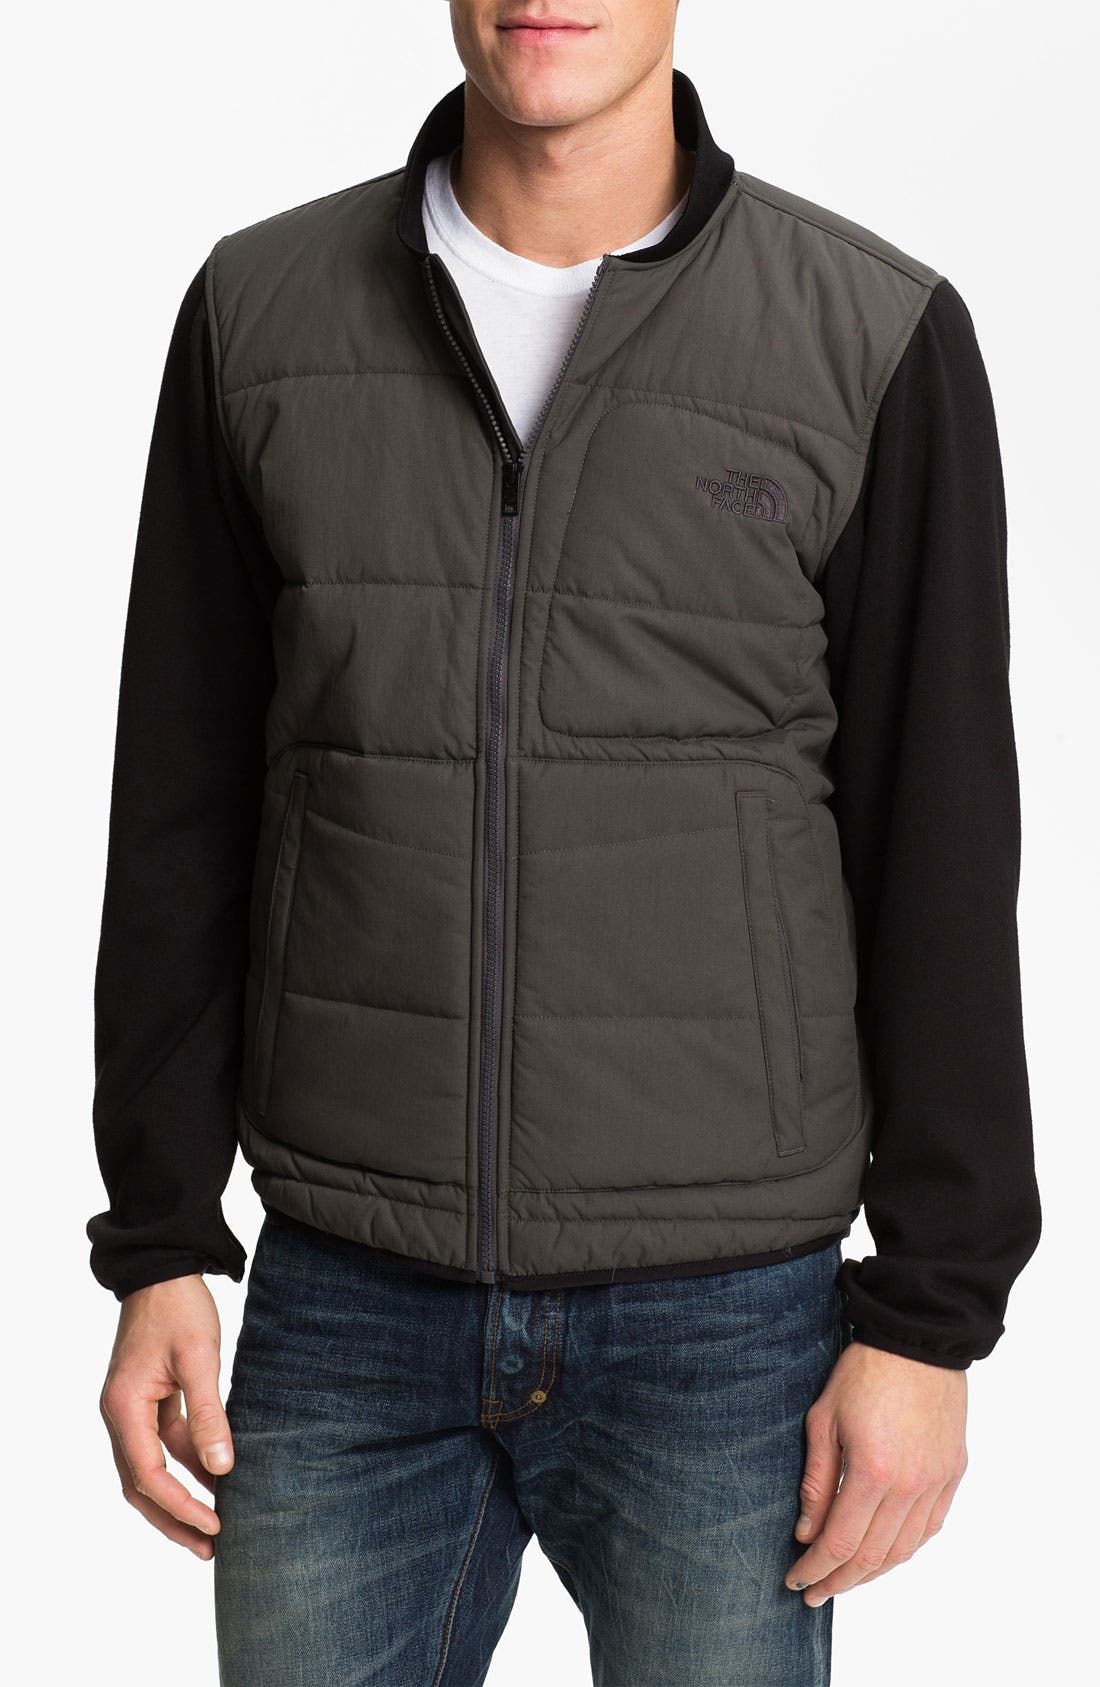 Main Image - The North Face 'Allerton' Jacket